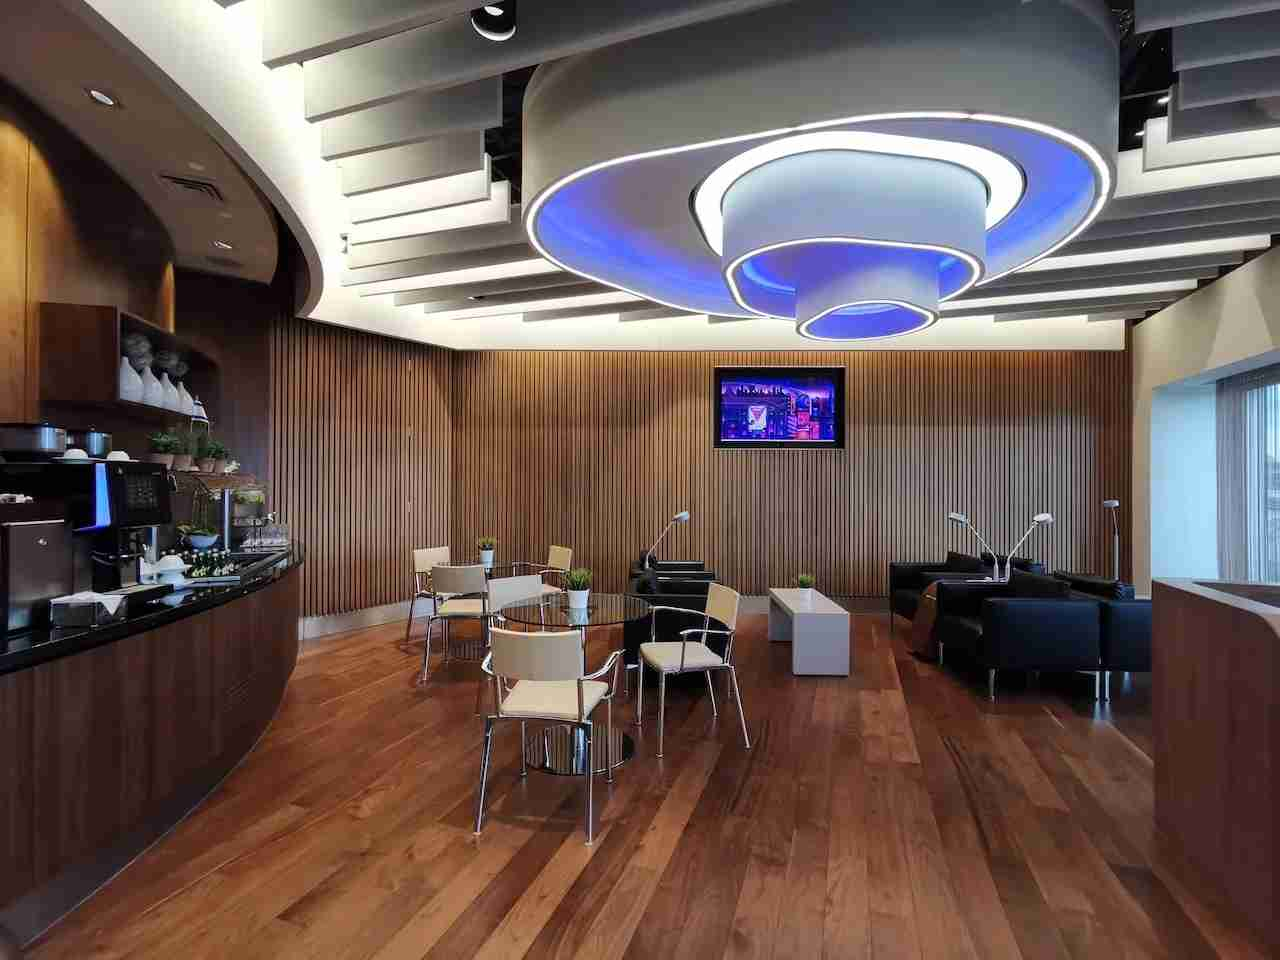 The Arts & Lounge airport lounge at London-Heathrow. (Image courtesy of Arts & Lounge)